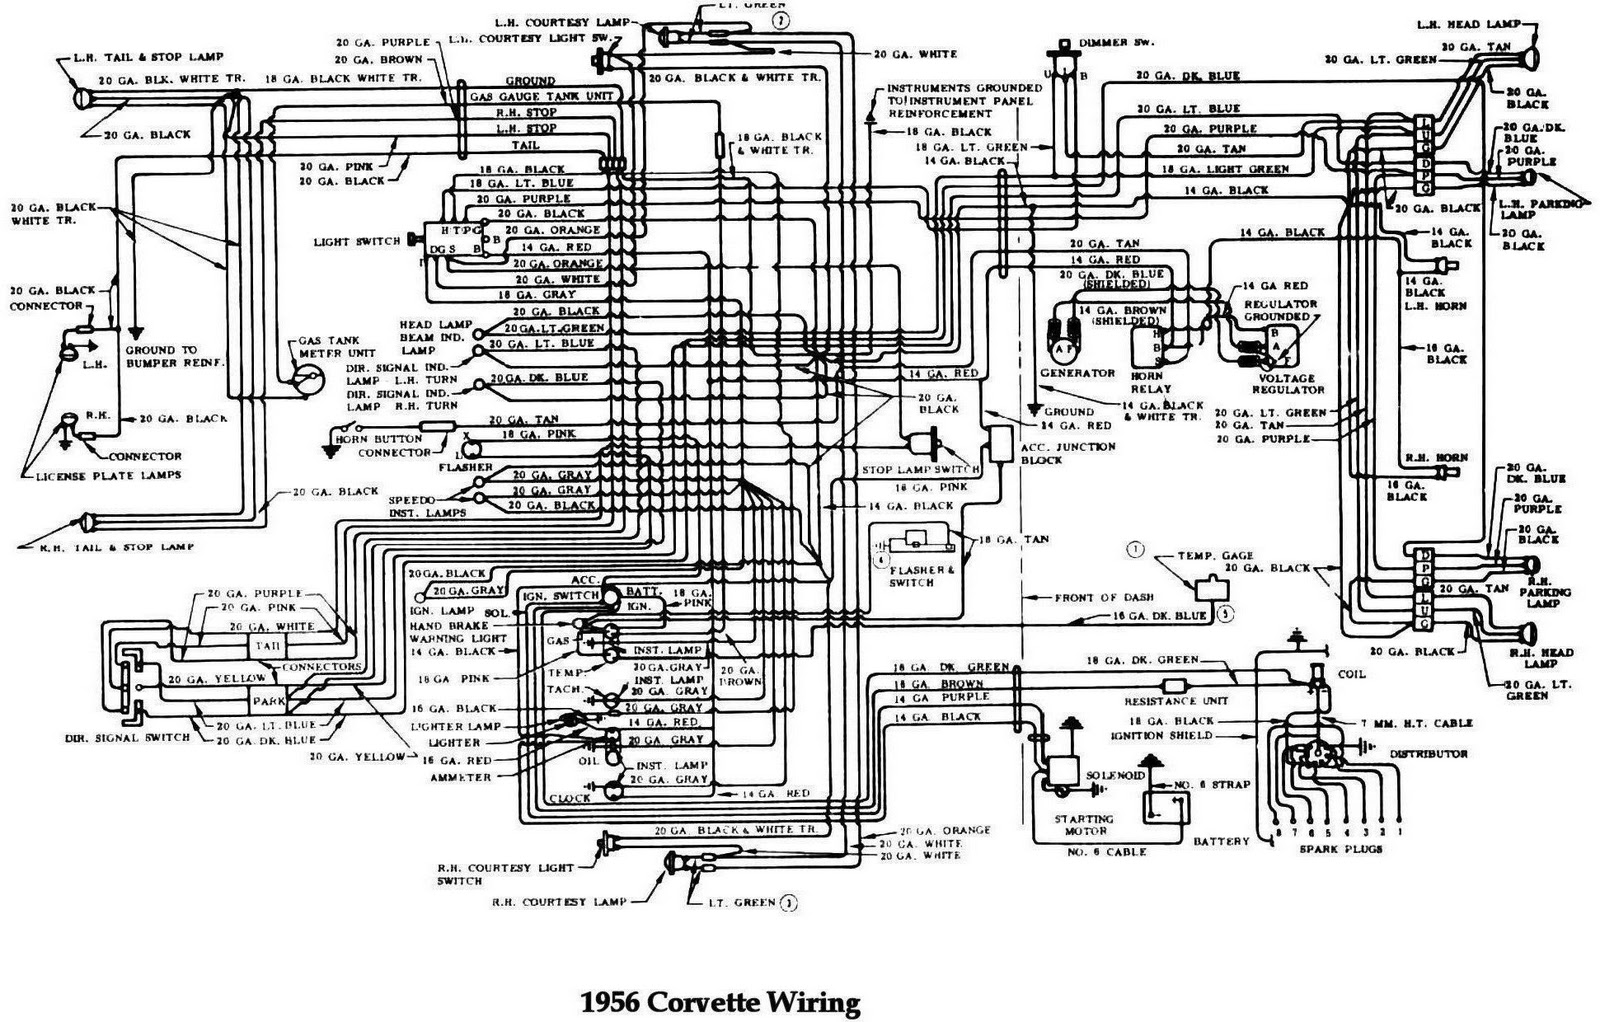 Fuse Also Ignition Switch Wiring Diagram On Simple Car Wiring ...  Dodge Ram Ignition Switch Wiring Diagram on dodge ram wiring harness, turn signal wiring diagram, dodge dart ignition switch wiring diagram, dodge ram alternator diagram, 1974 nova ignition switch wiring diagram, 1974 mercury outboard ignition switch wiring diagram, ford fiesta ignition switch wiring diagram, dodge ram starter diagram, ford ignition system wiring diagram, honda civic ignition switch wiring diagram, dodge electronic ignition wiring diagram, 1975 dodge truck wiring diagram, ford mustang ignition switch wiring diagram, chrysler ignition switch wiring diagram, dodge grand caravan wiring diagram, pontiac gto ignition switch wiring diagram, jeep cj ignition switch wiring diagram, chevrolet ignition switch wiring diagram, dodge ram ignition switch connector, honda accord ignition switch wiring diagram,